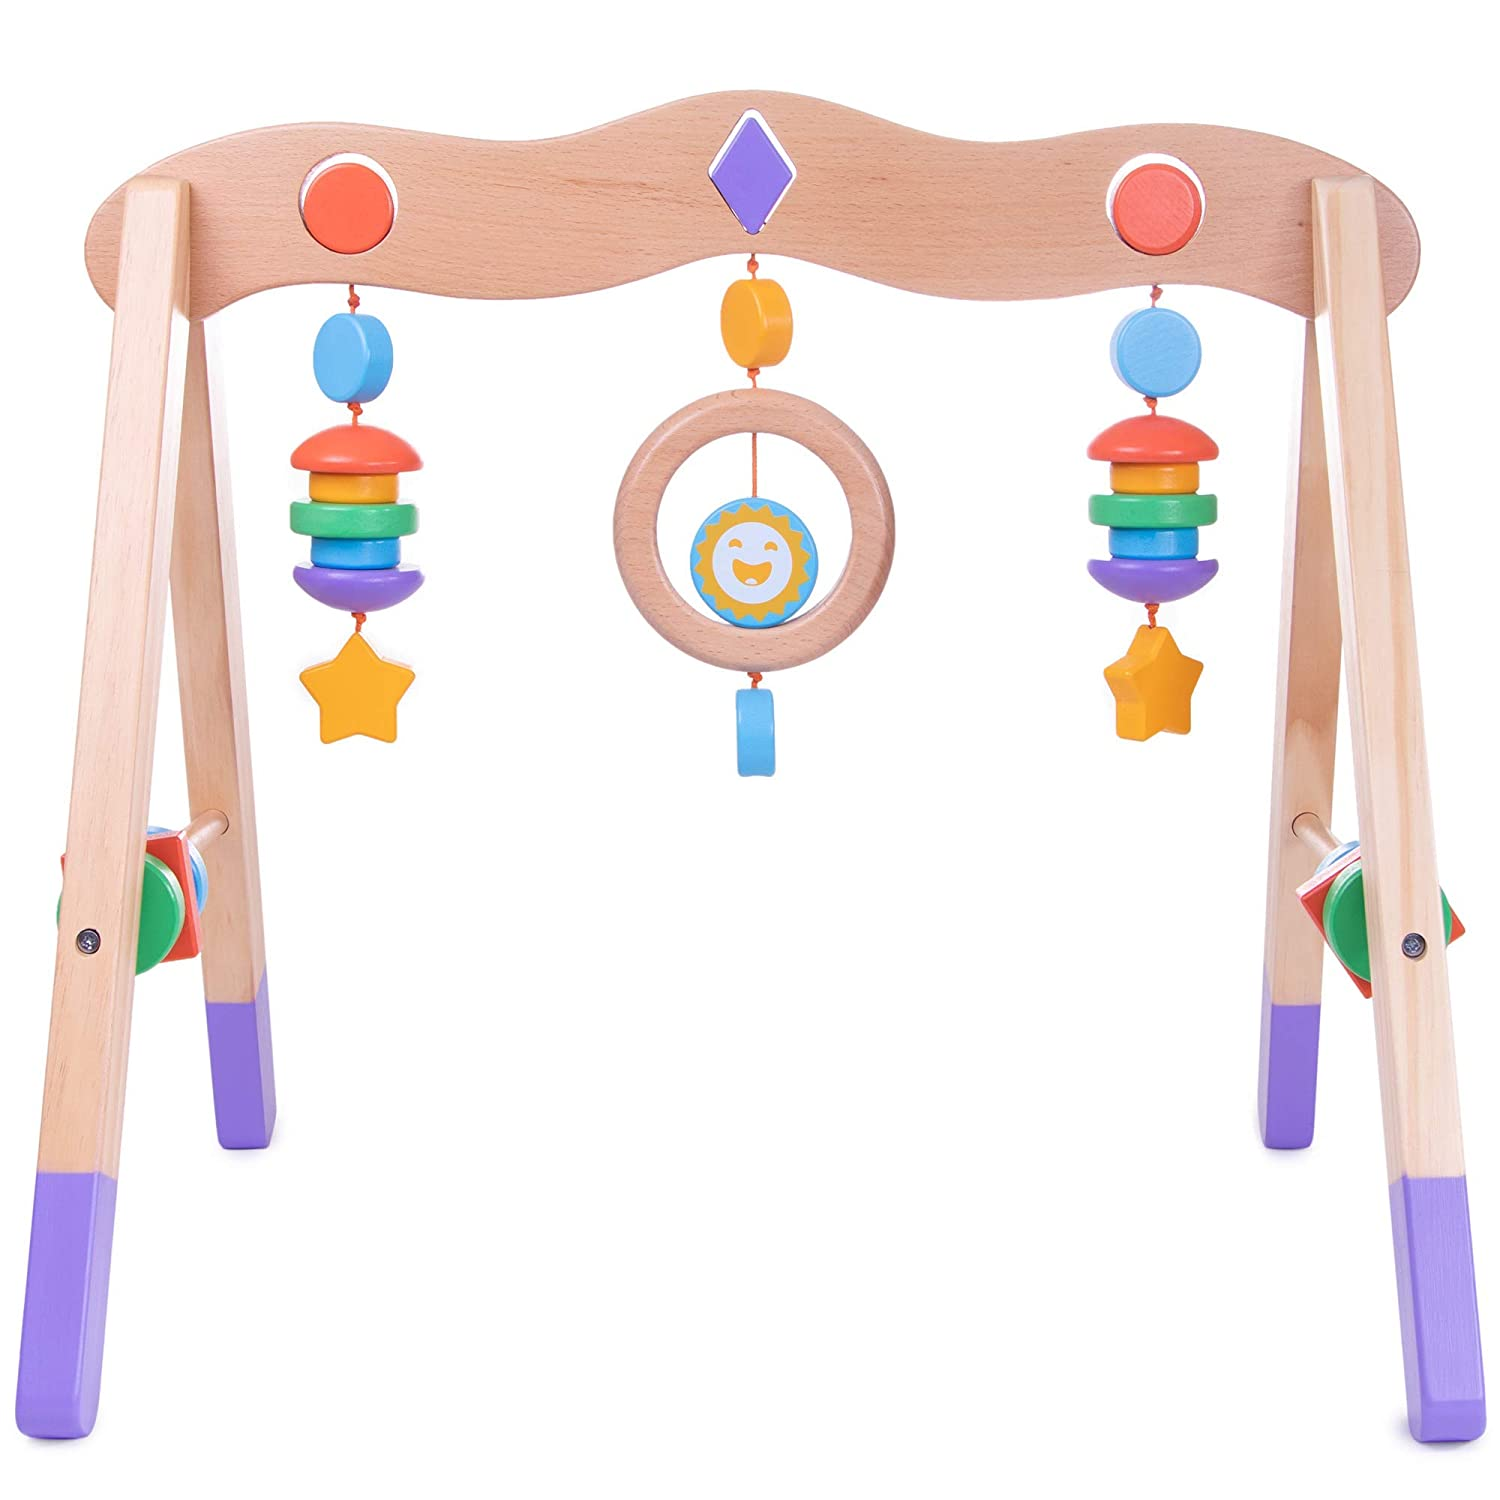 Imagination Generation Little Olympians Wooden Baby Play Gym | Infant Sensory/Motor Activity Center with Cute Shapes and Colors Brybelly Holdings Inc.